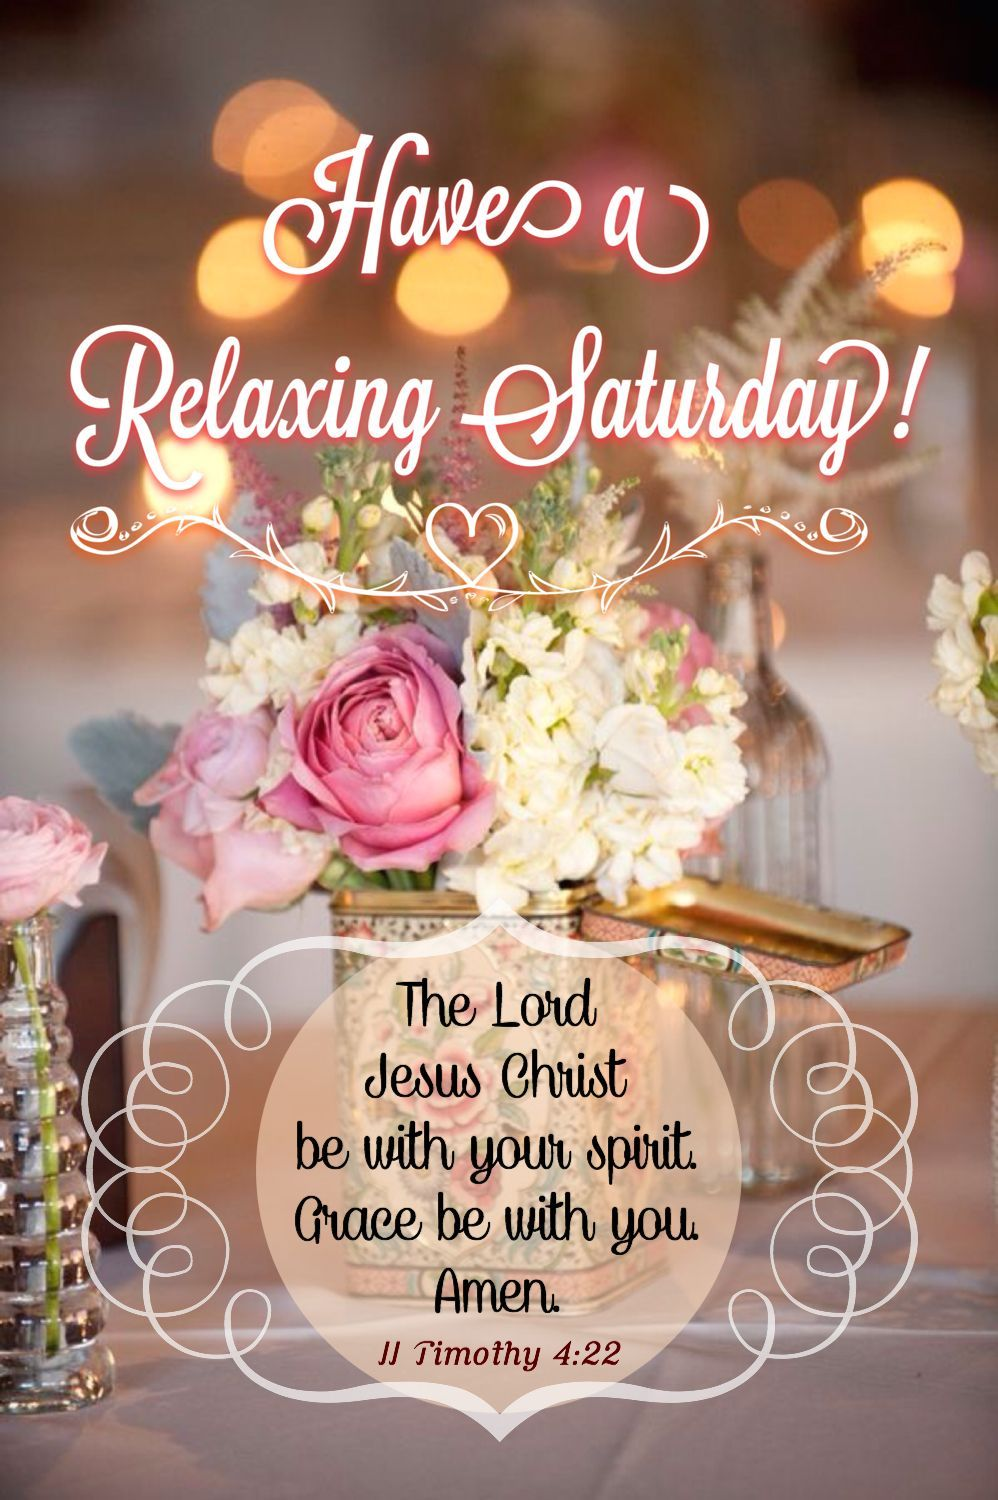 Pin By Marilynn On Daily Blessings And Greetings In 2018 Pinterest